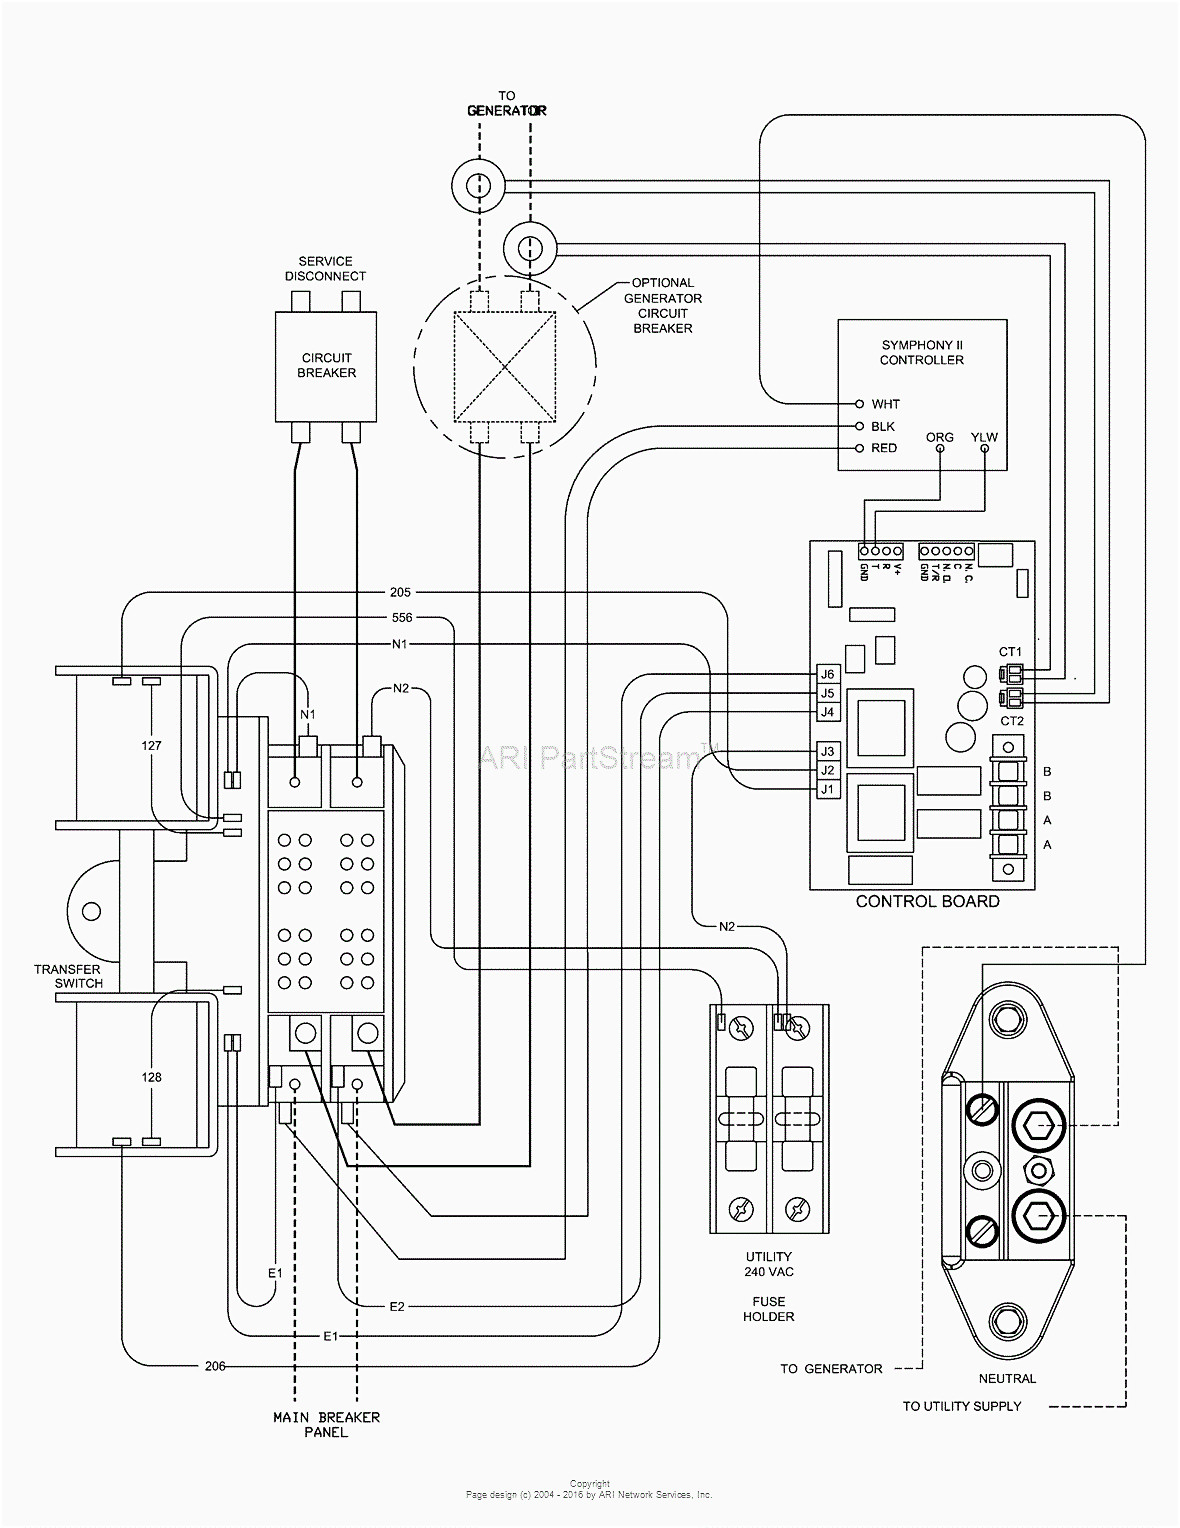 Magnificent Wiring Diagram Starter 6500Gp Generac Basic Electronics Wiring Diagram Wiring Cloud Nuvitbieswglorg